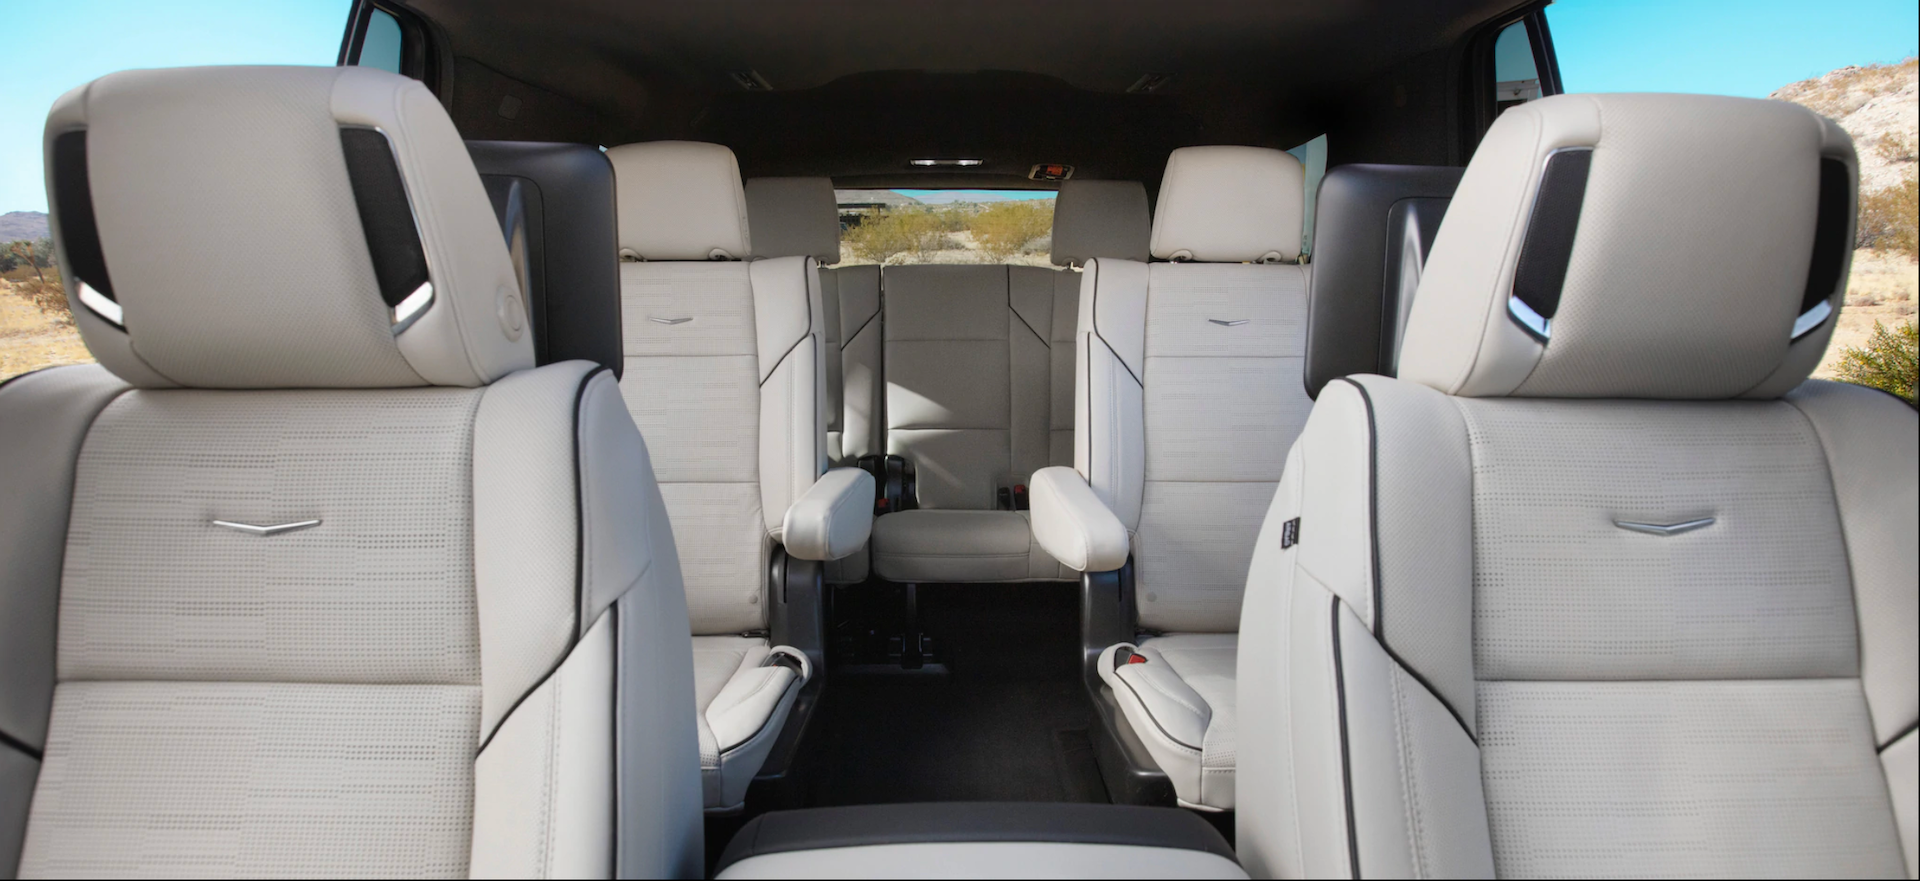 2021 Cadillac Escalade Cargo Space